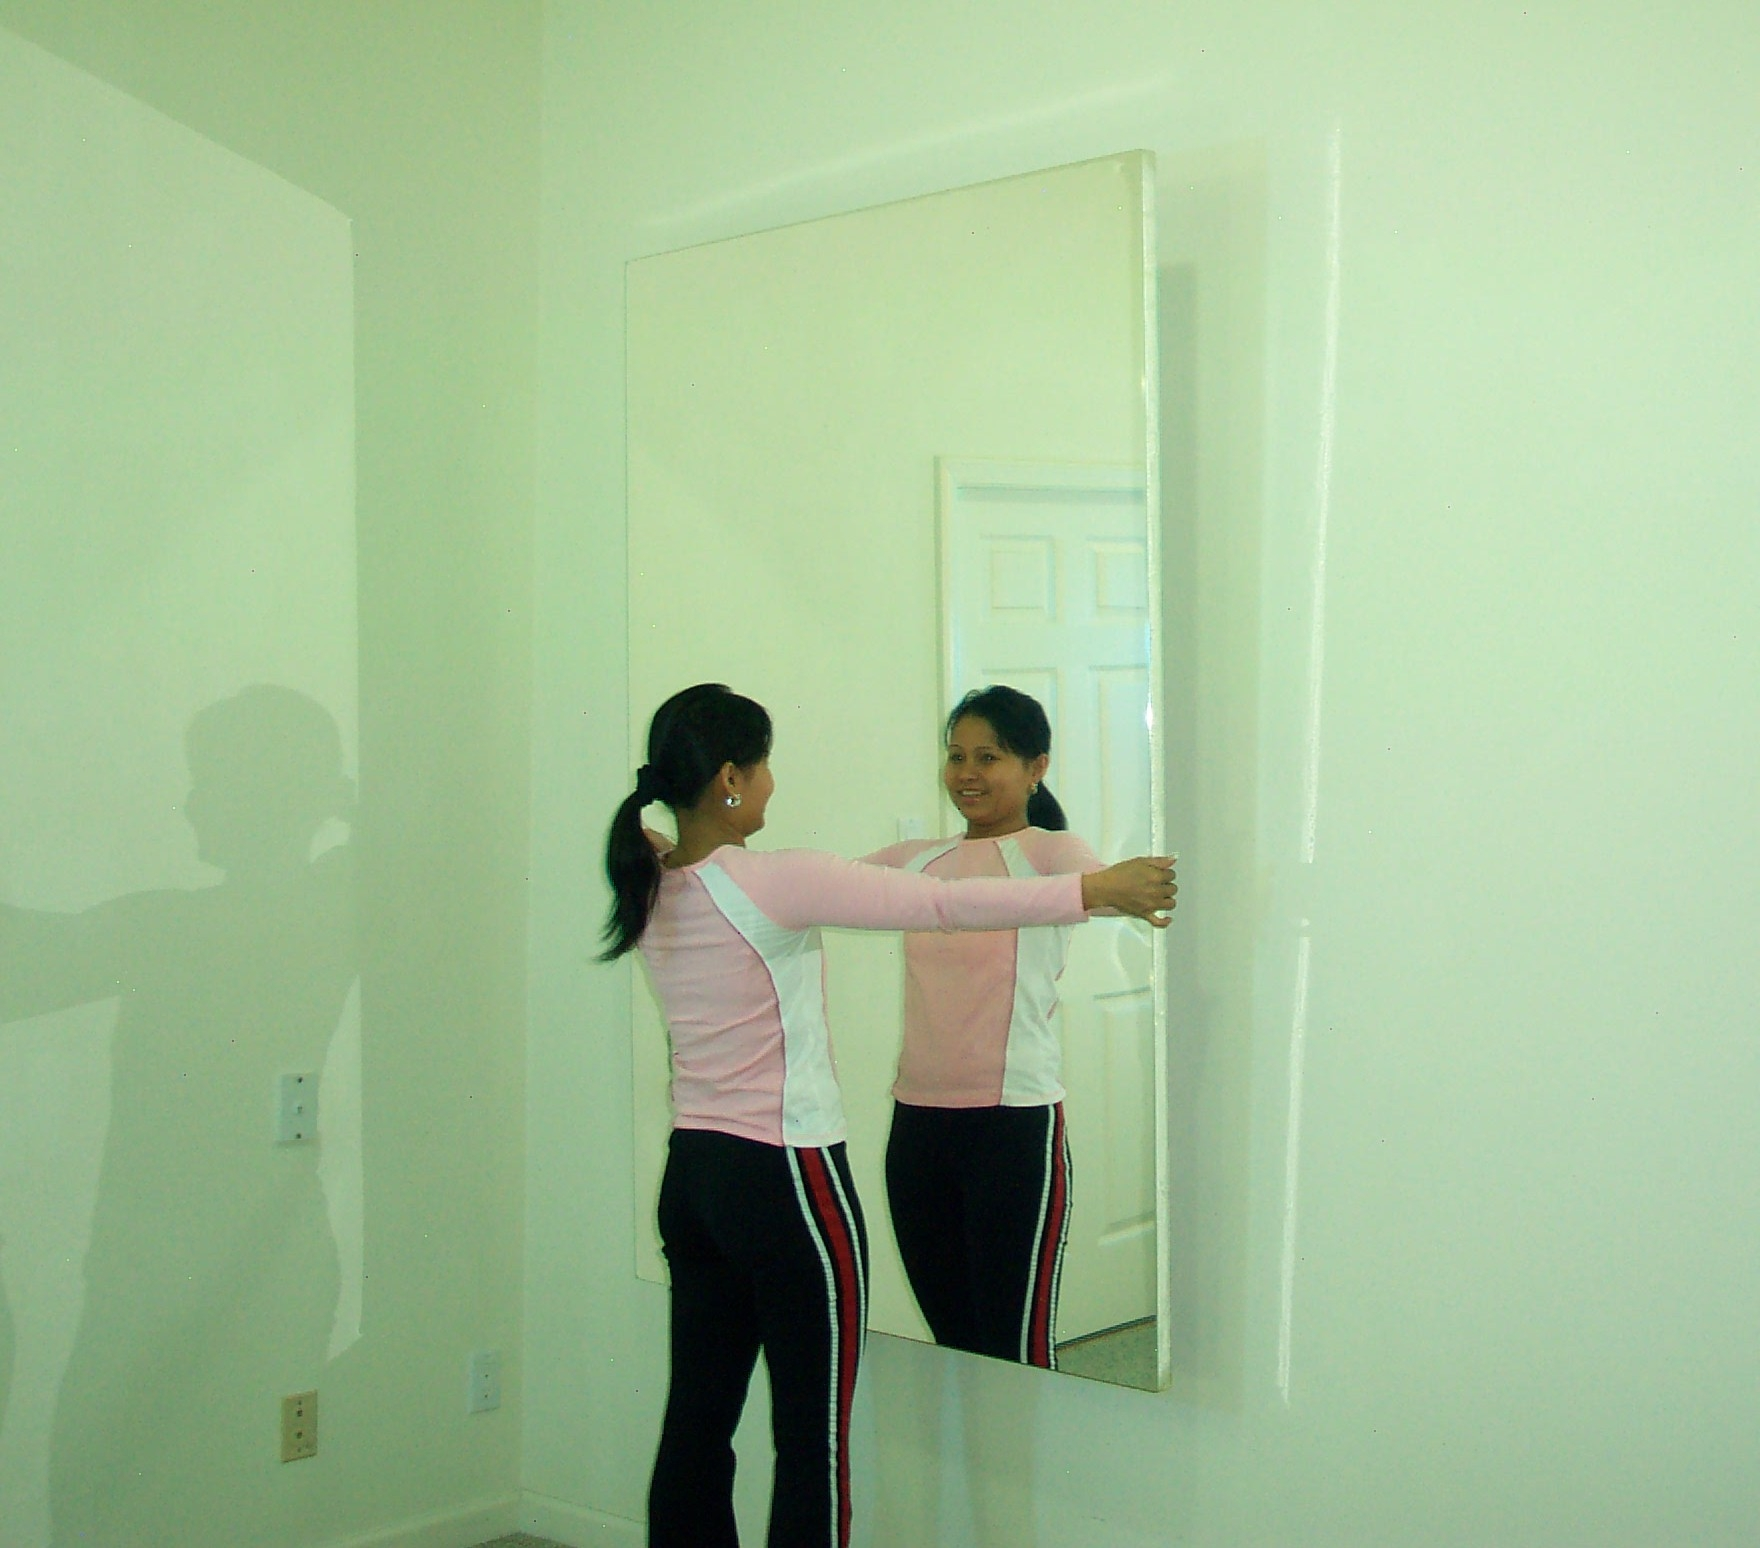 Wall Mounted Mirrors For Dance